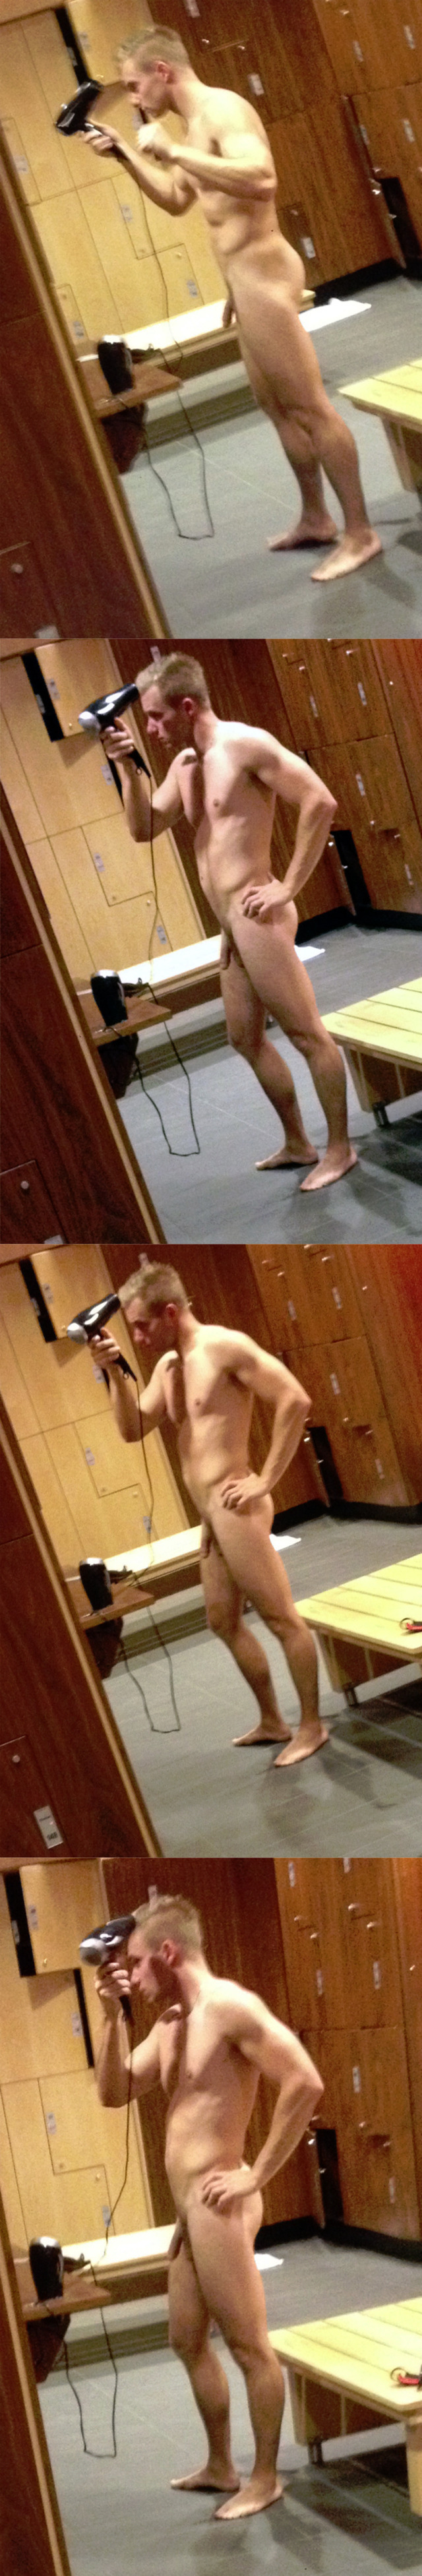 guy-drying-off-hair-naked-gym-lockerroom